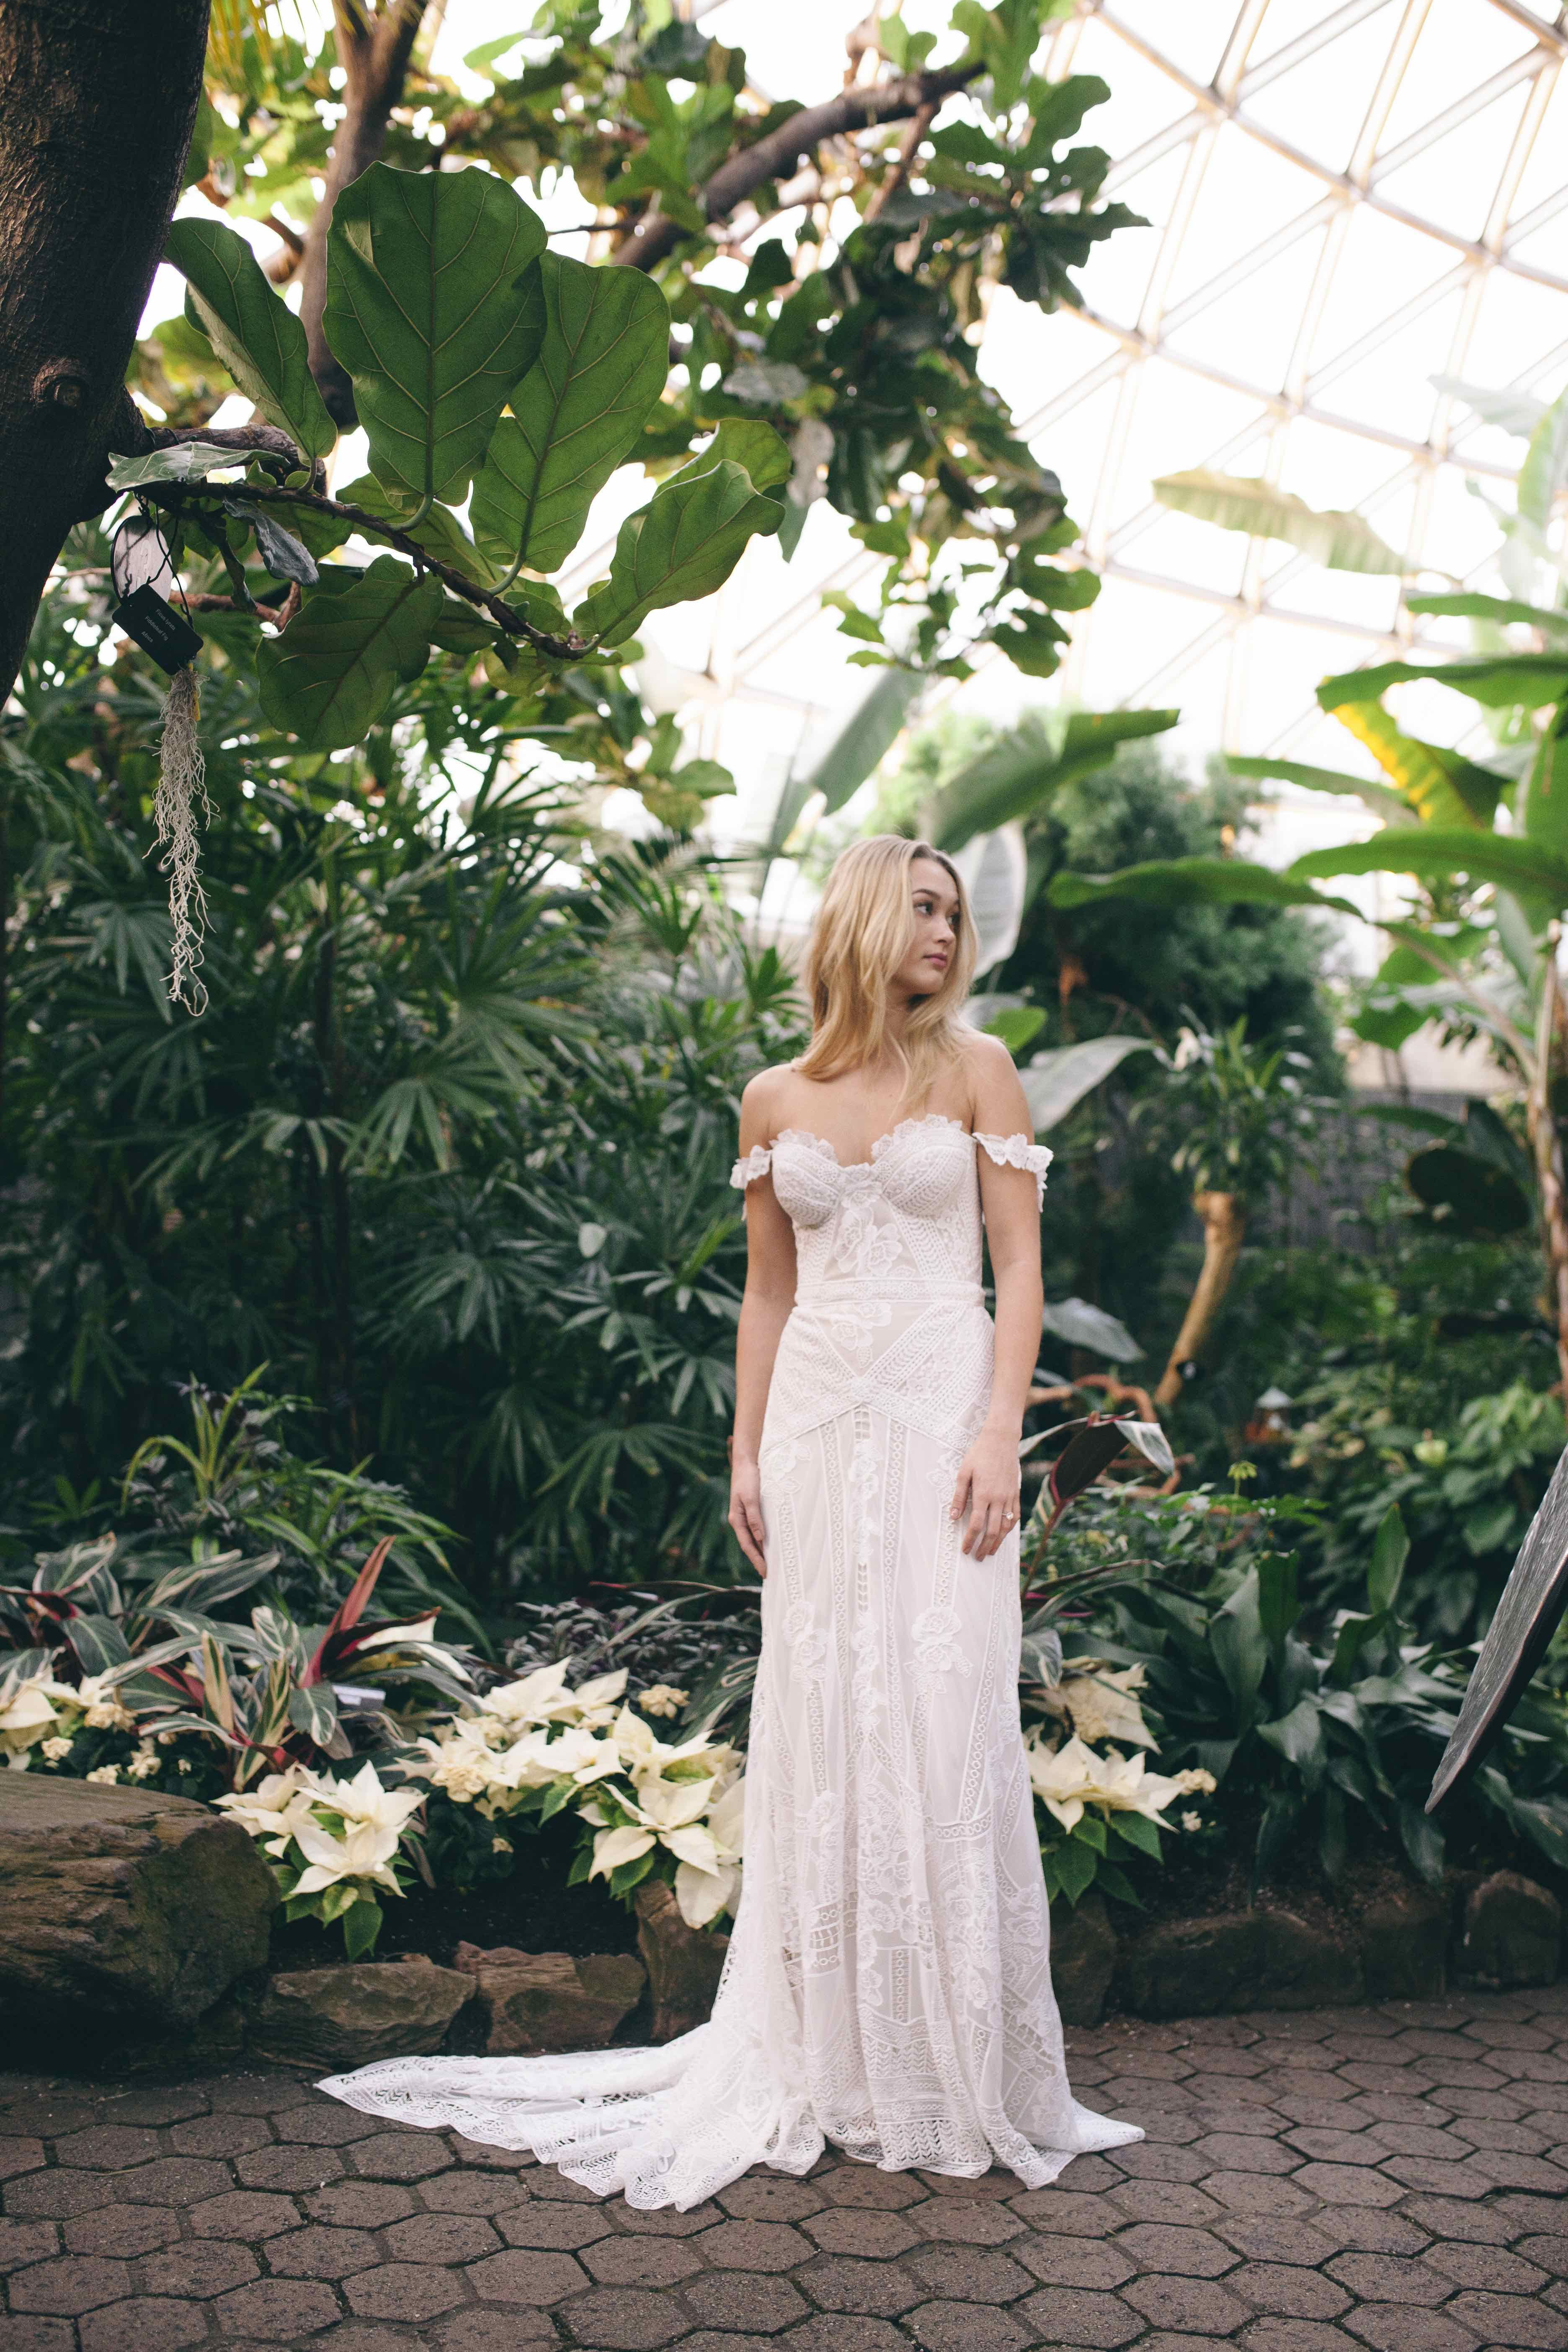 Union Bridal - WILD LOVE Fox by @ruedeseinebride available at Union ...